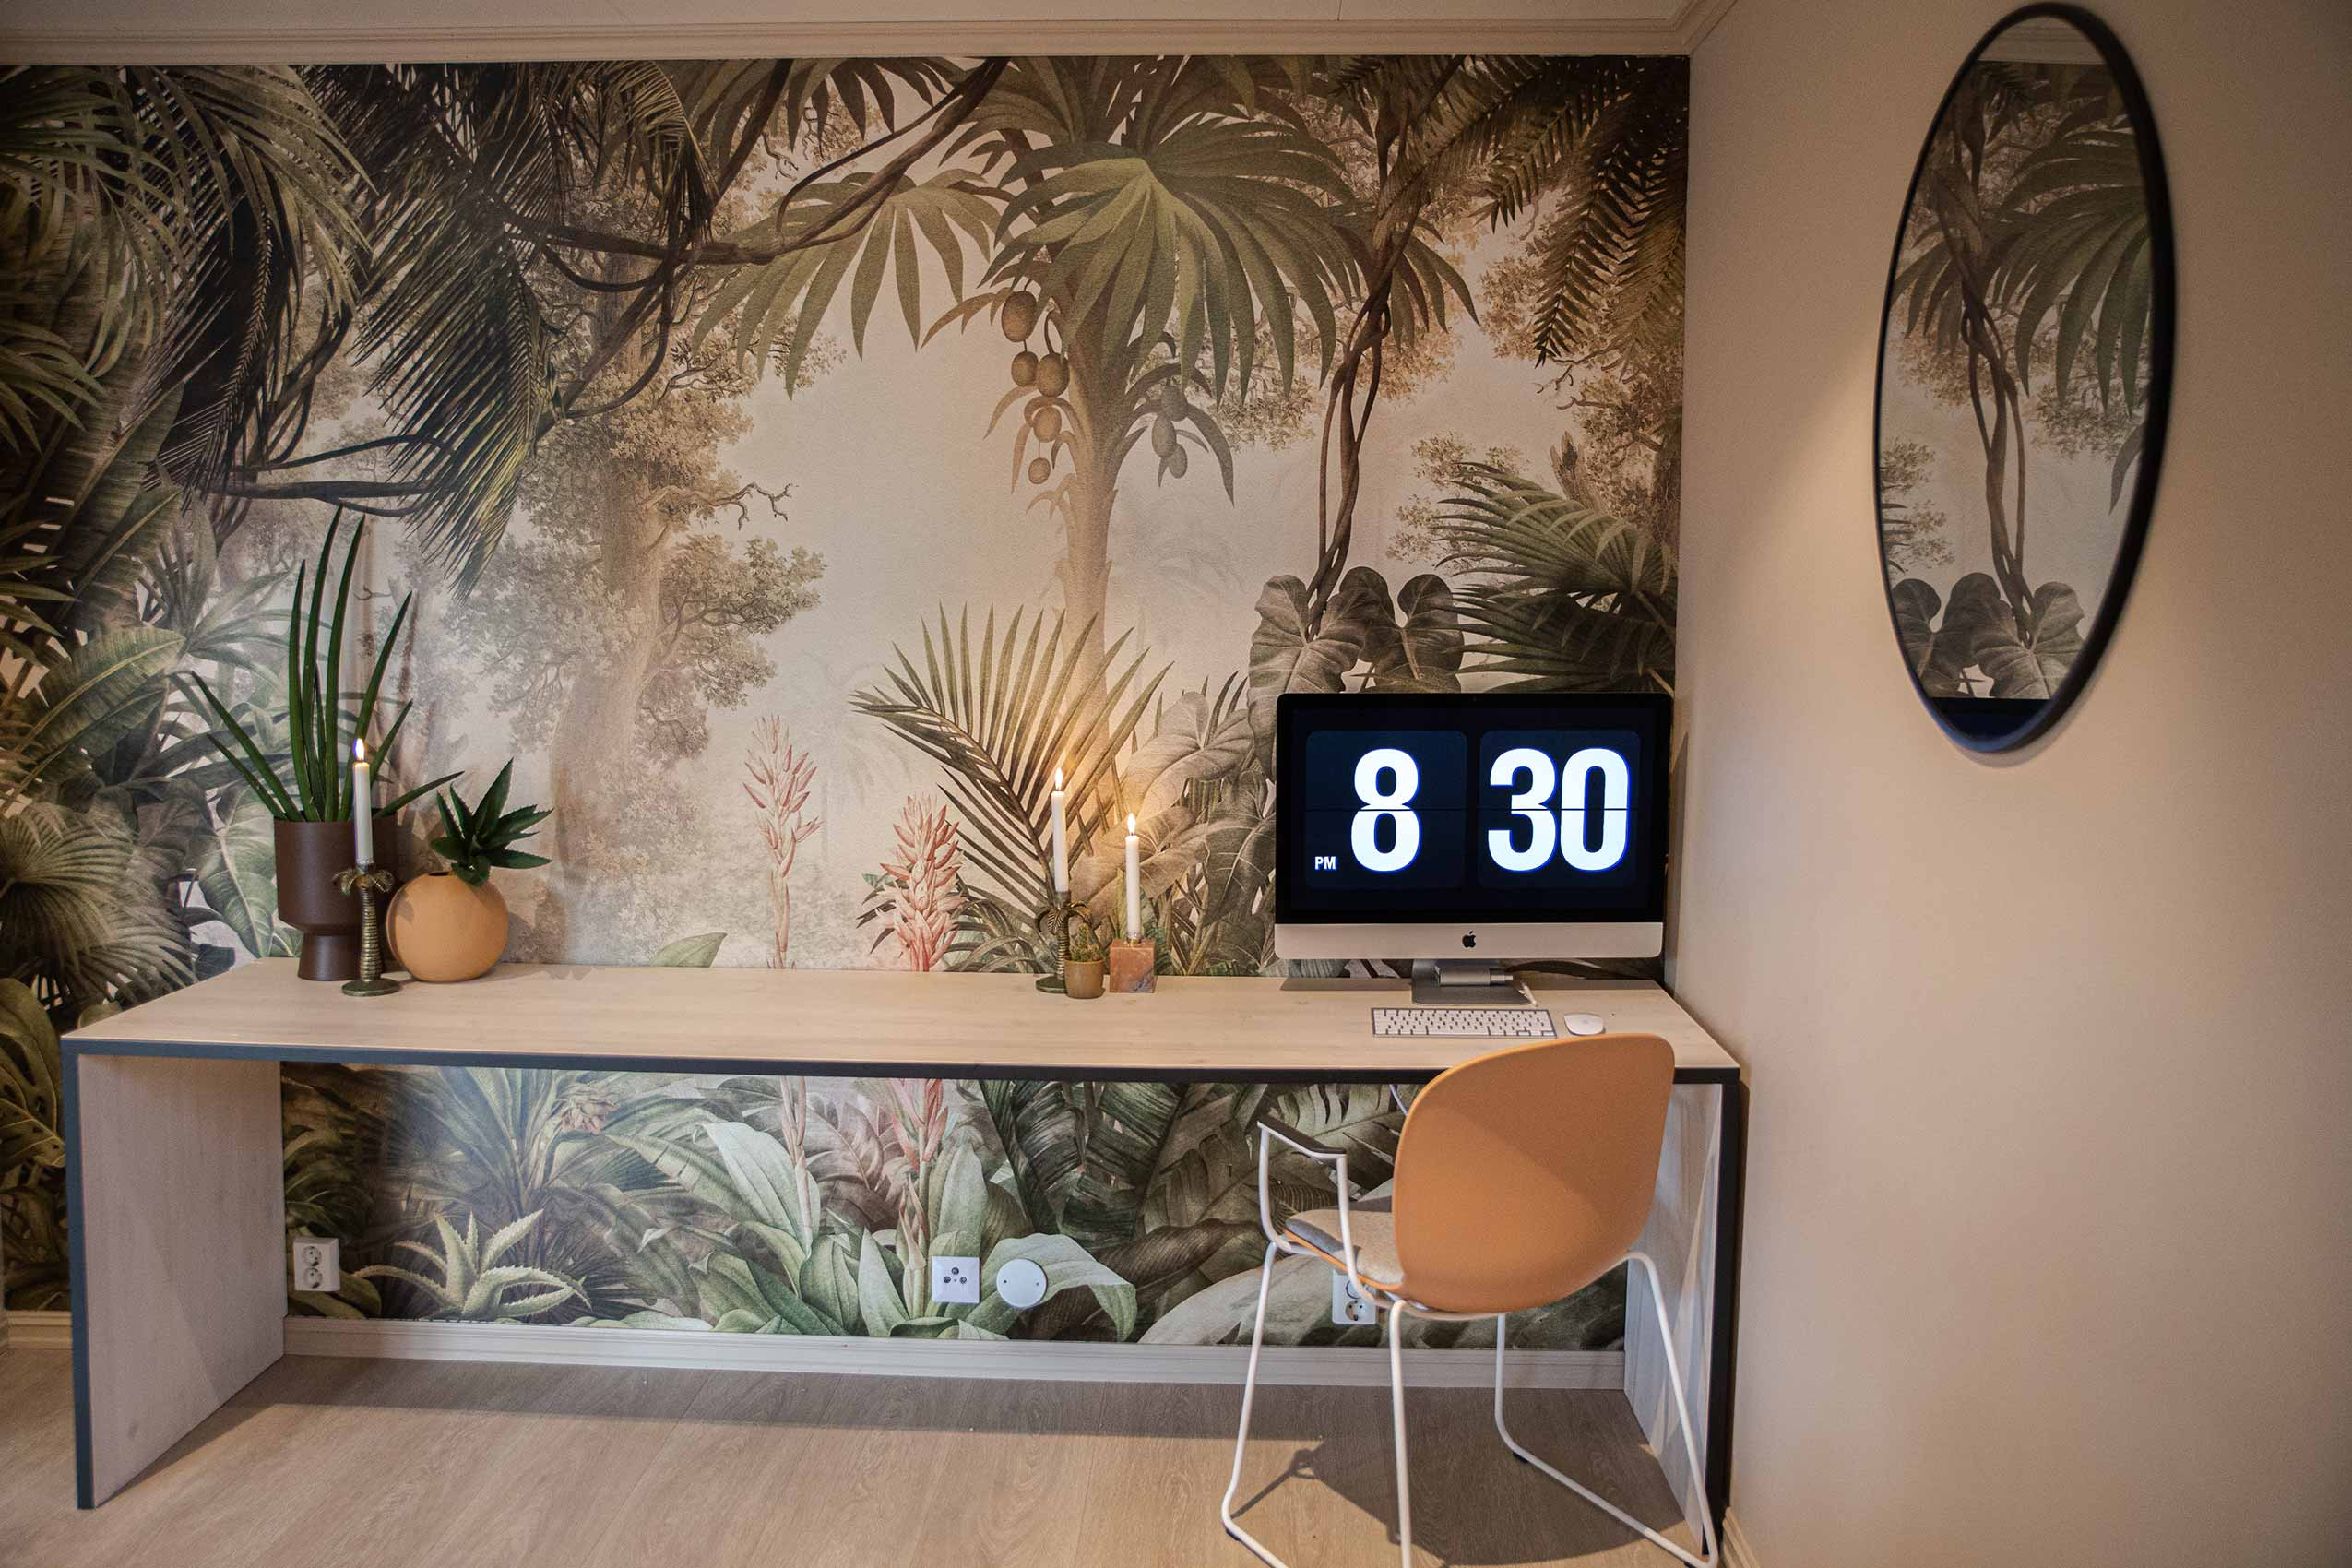 Coral RBM Noor chair at a side table with a palm treee mural wall covering and a clock showing 8:30